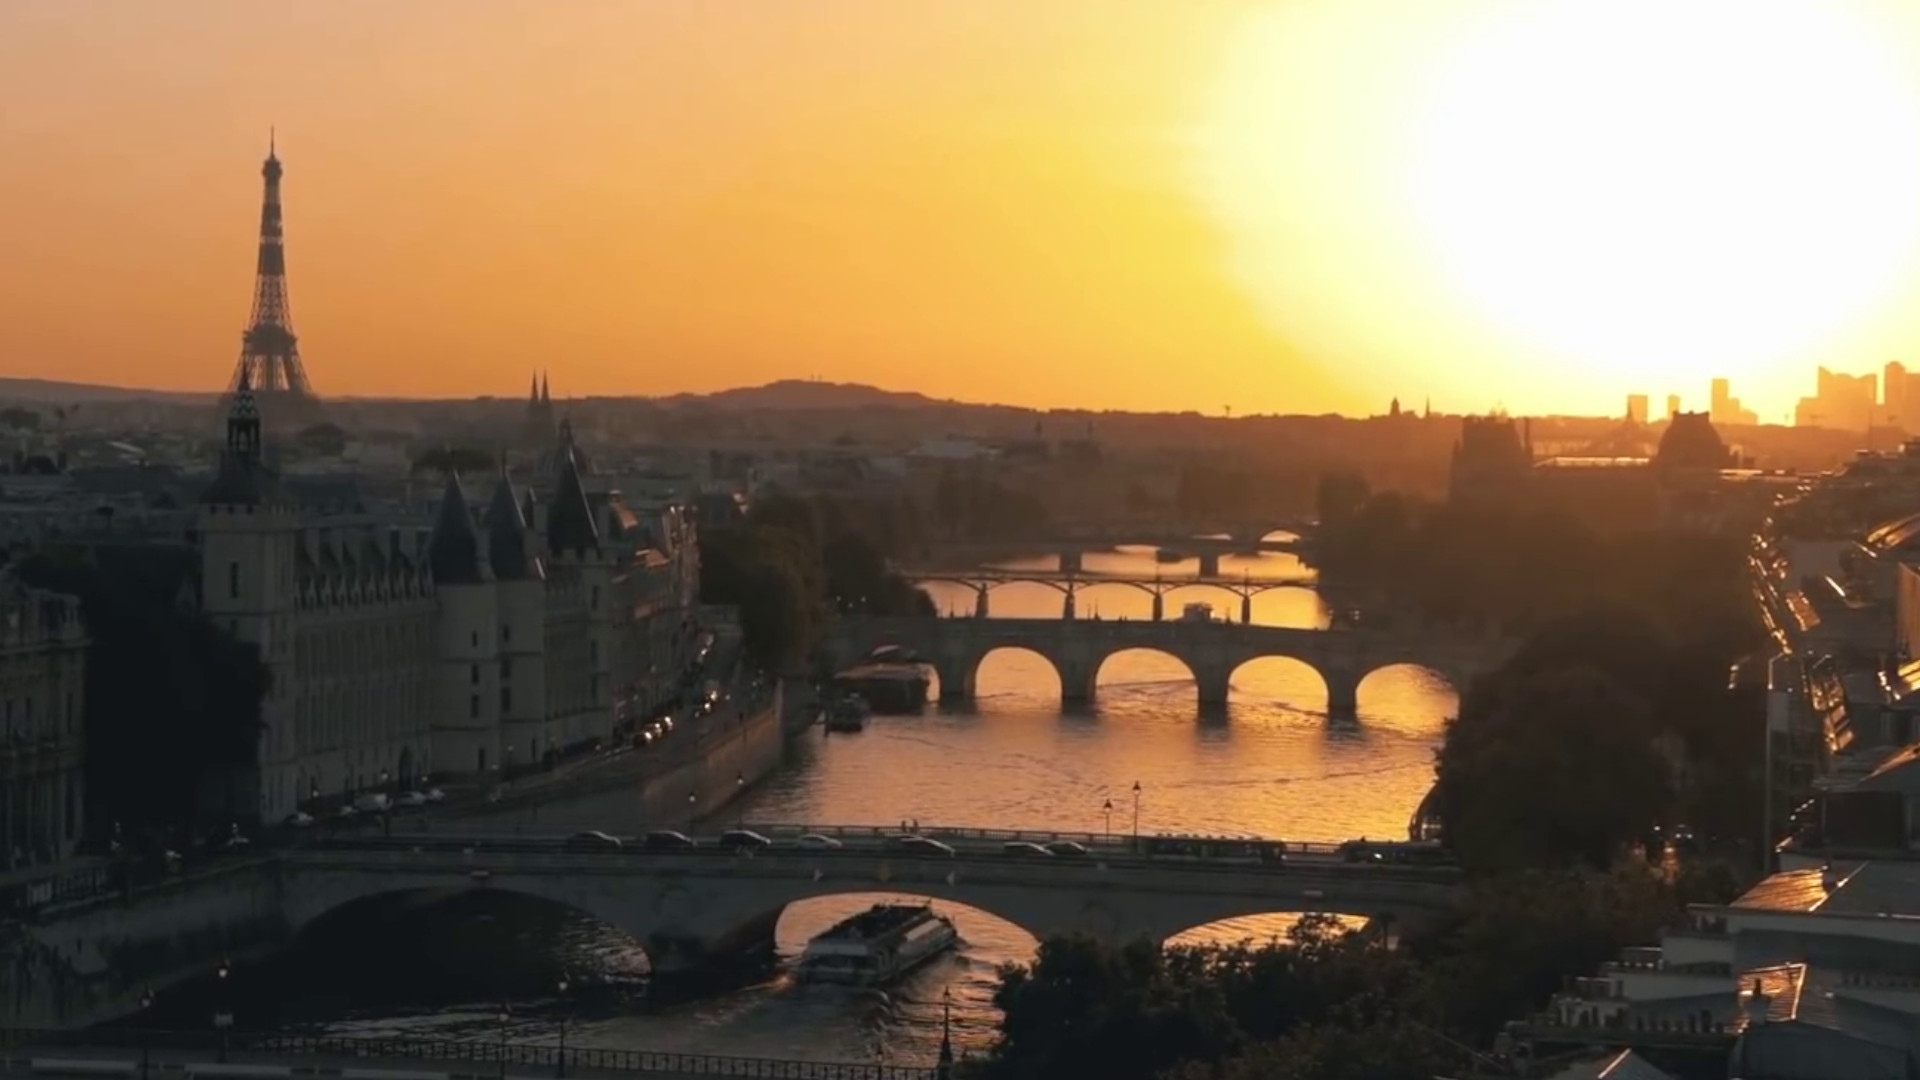 #ExploreFrance, What Really Matters Tourism Campaign of France